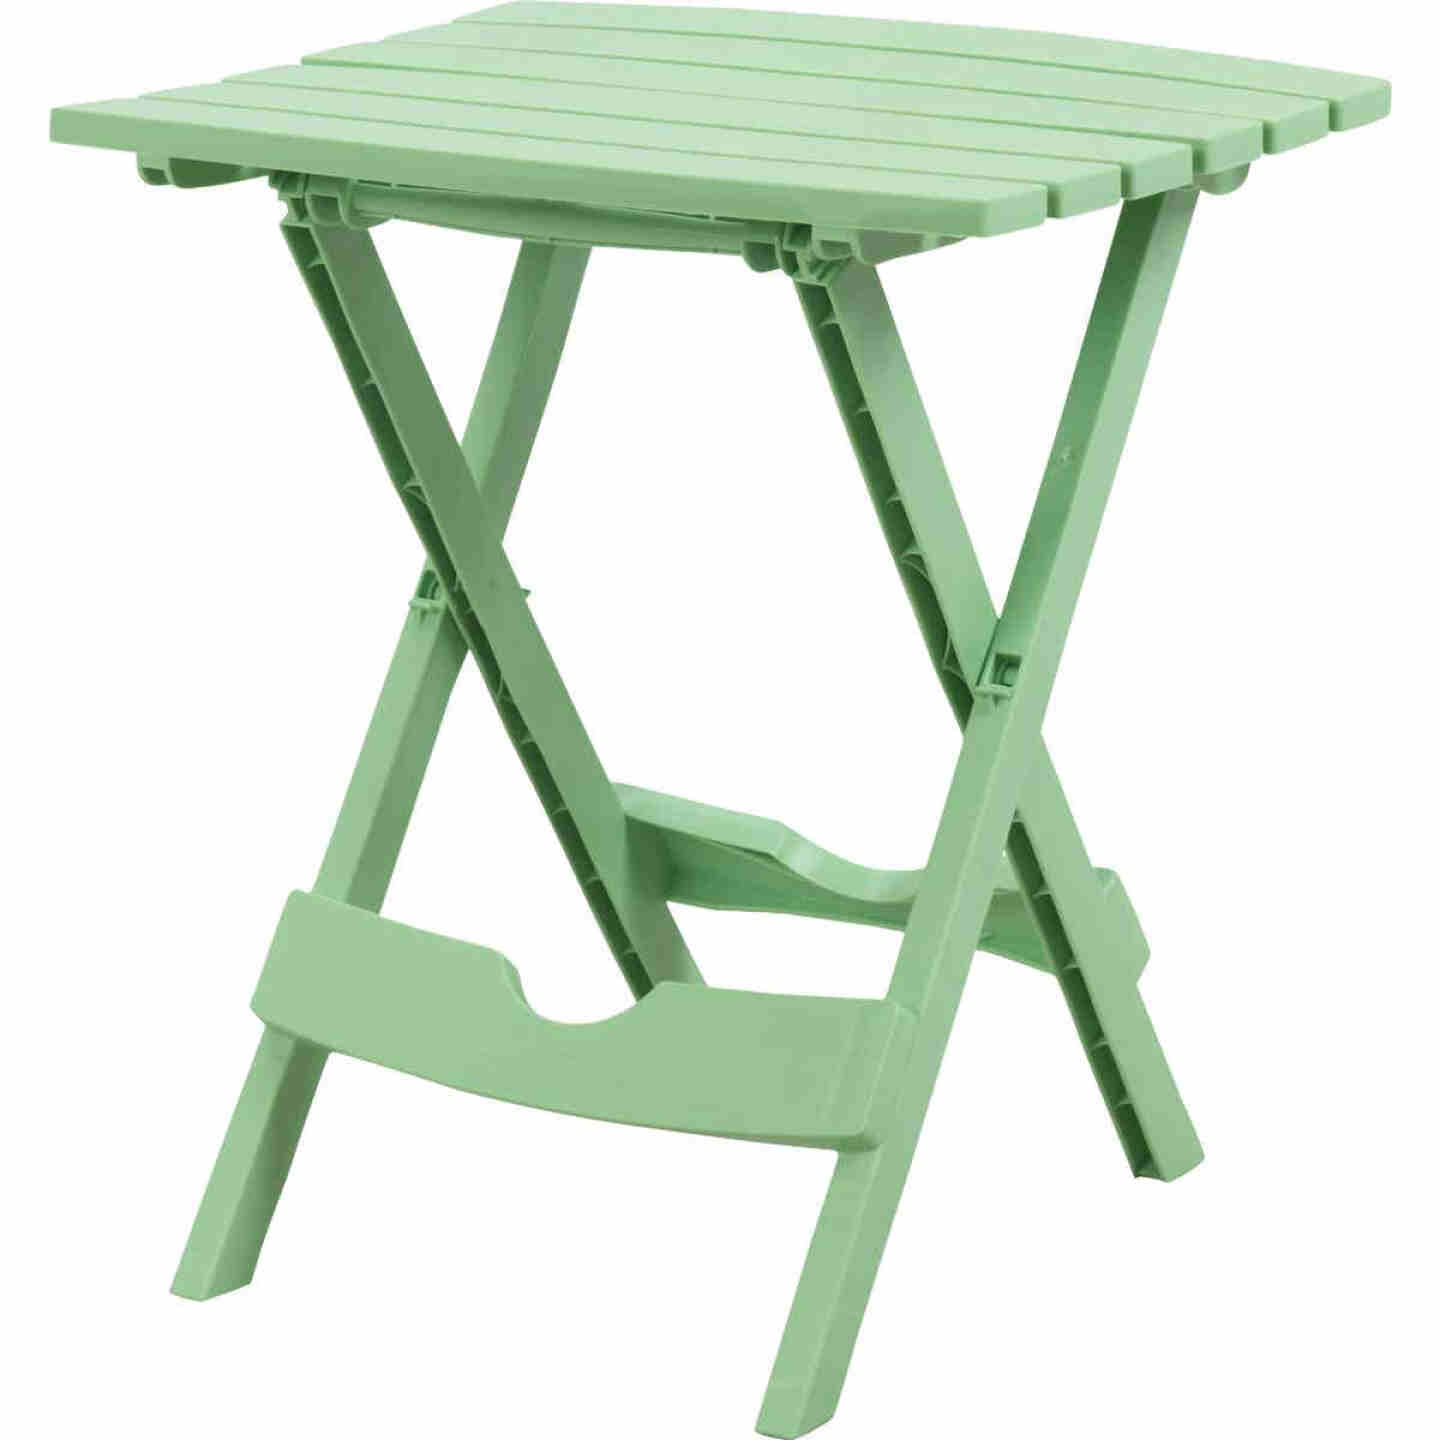 Adams Quik-Fold Green 15 In. x 17.5 In. Rectangle Resin Folding Side Table Image 1